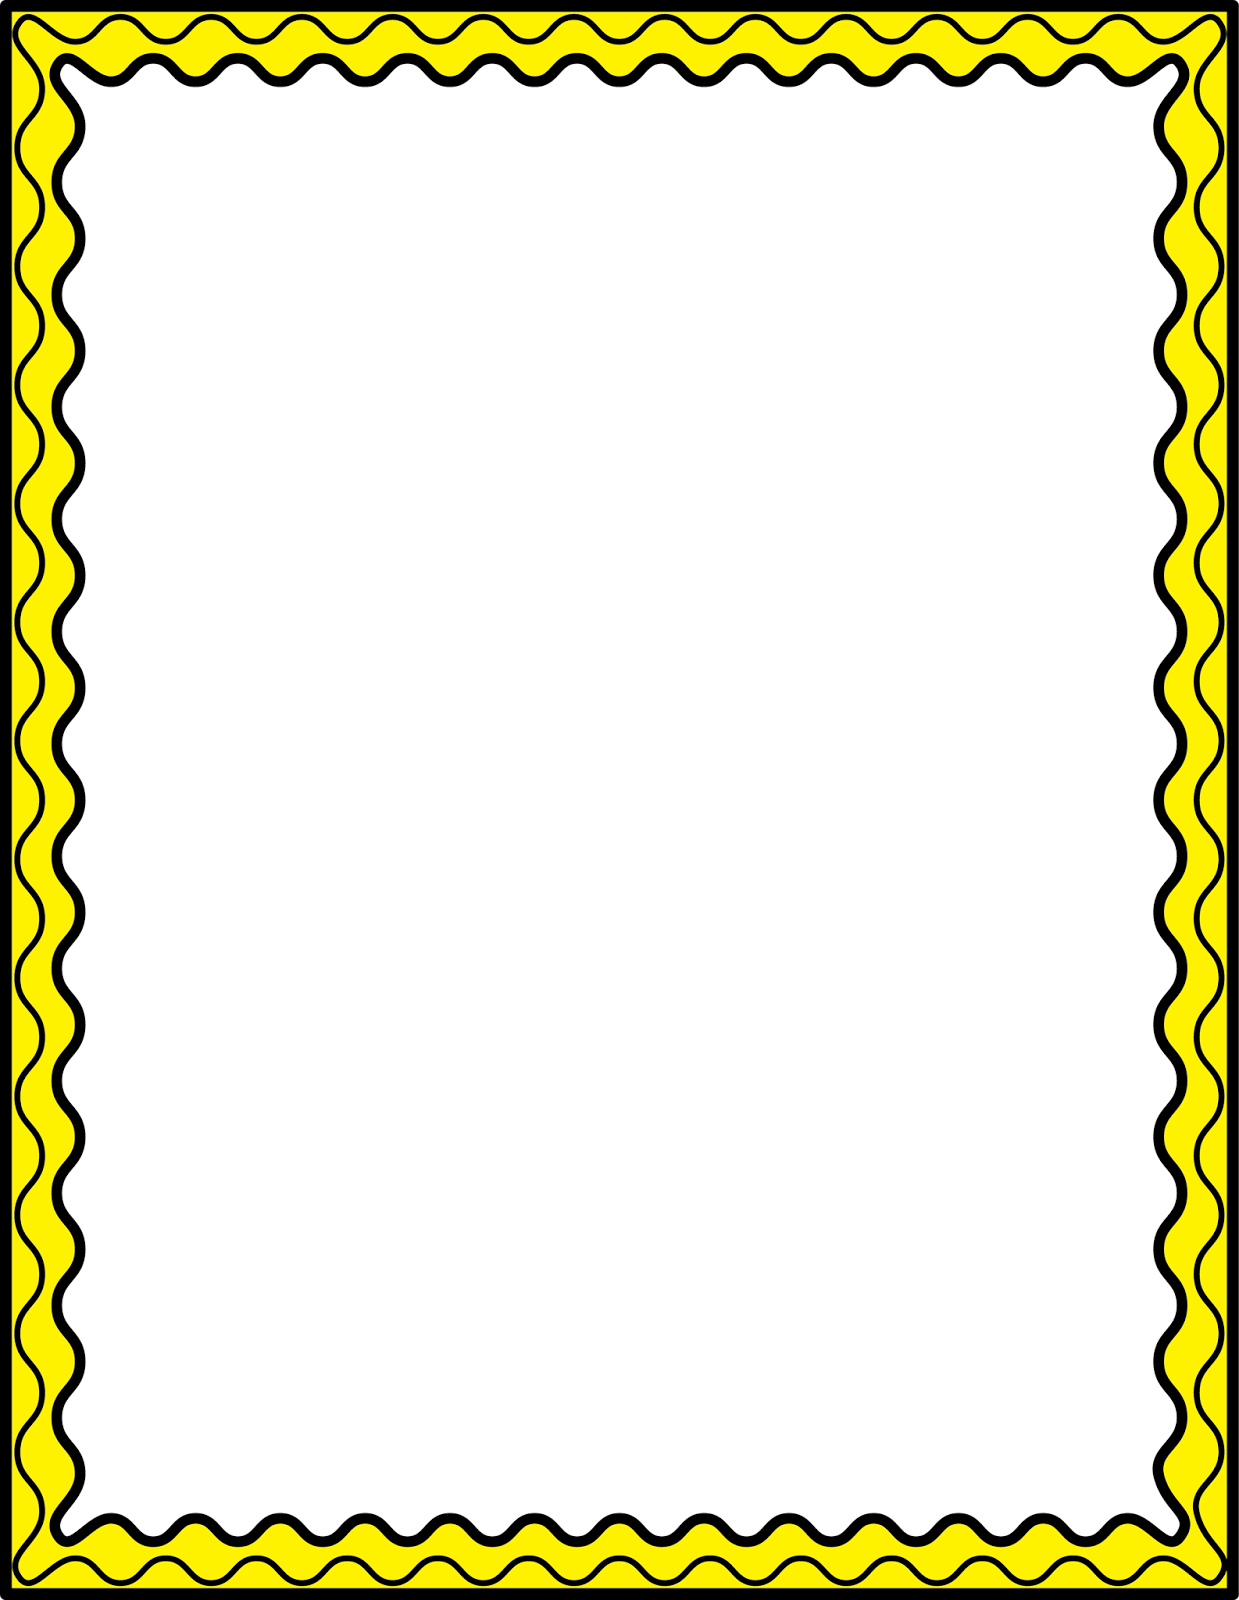 Image result for thin page borders | Page borders | Page ... vector freeuse download